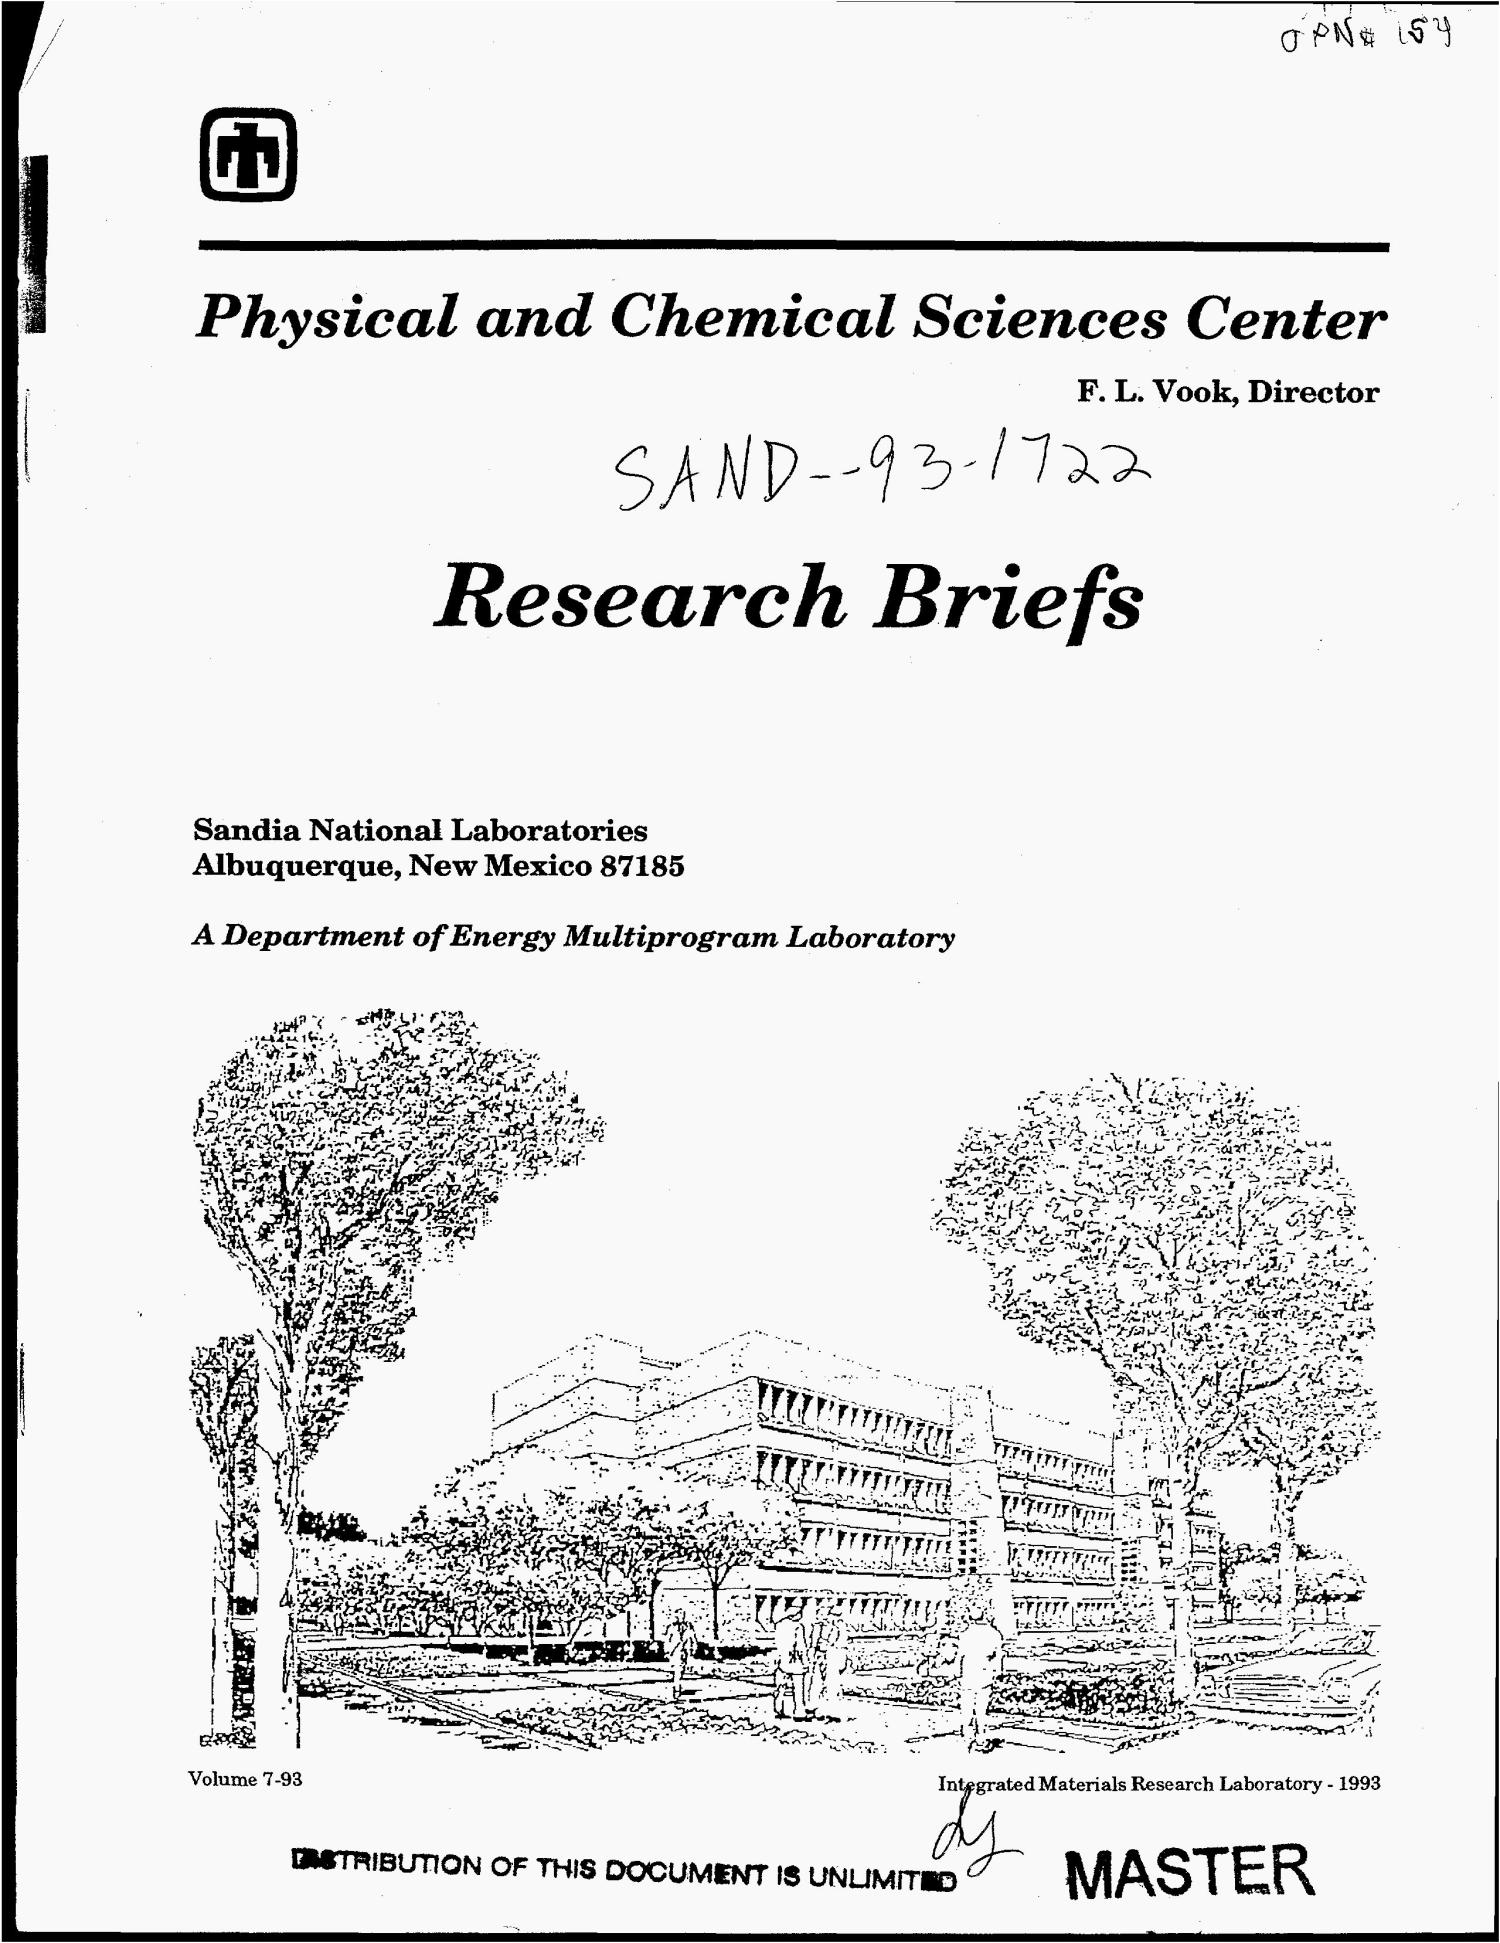 Research briefs of the Physical and Chemical Sciences